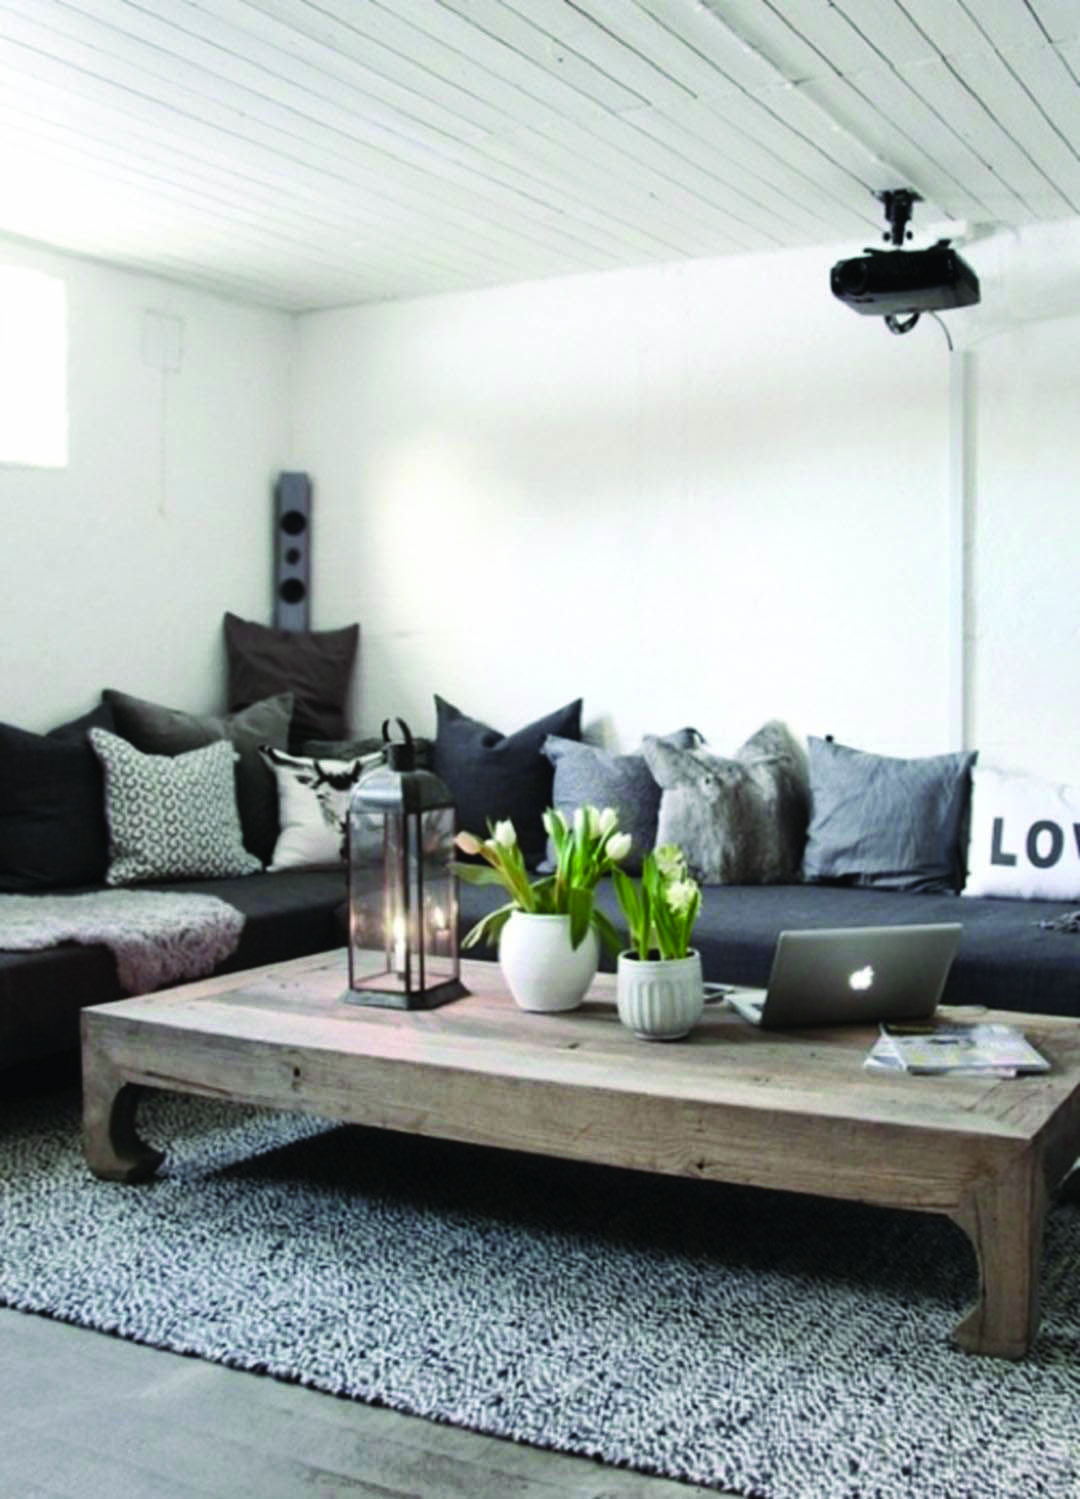 Pin On Rustic Living Room Ideas #rustic #living #room #couch